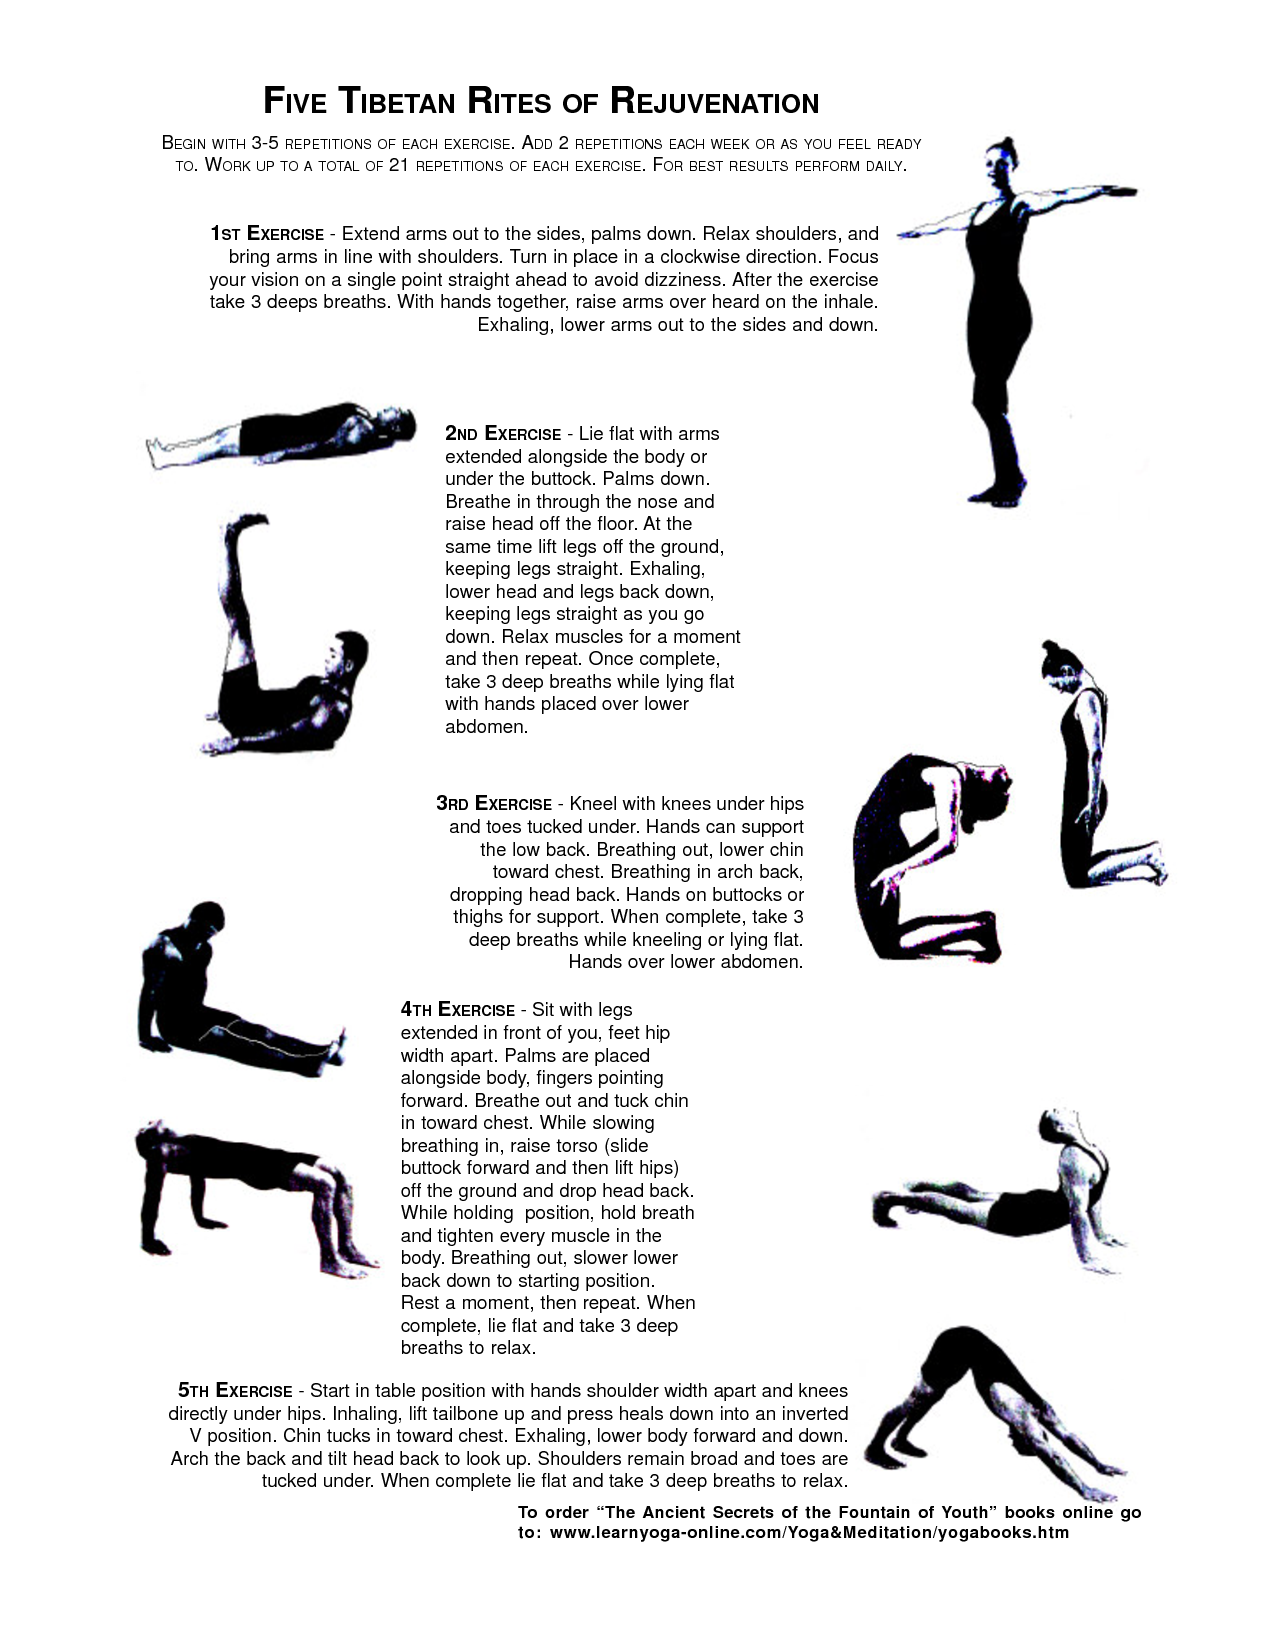 tibetan dream yoga instructions